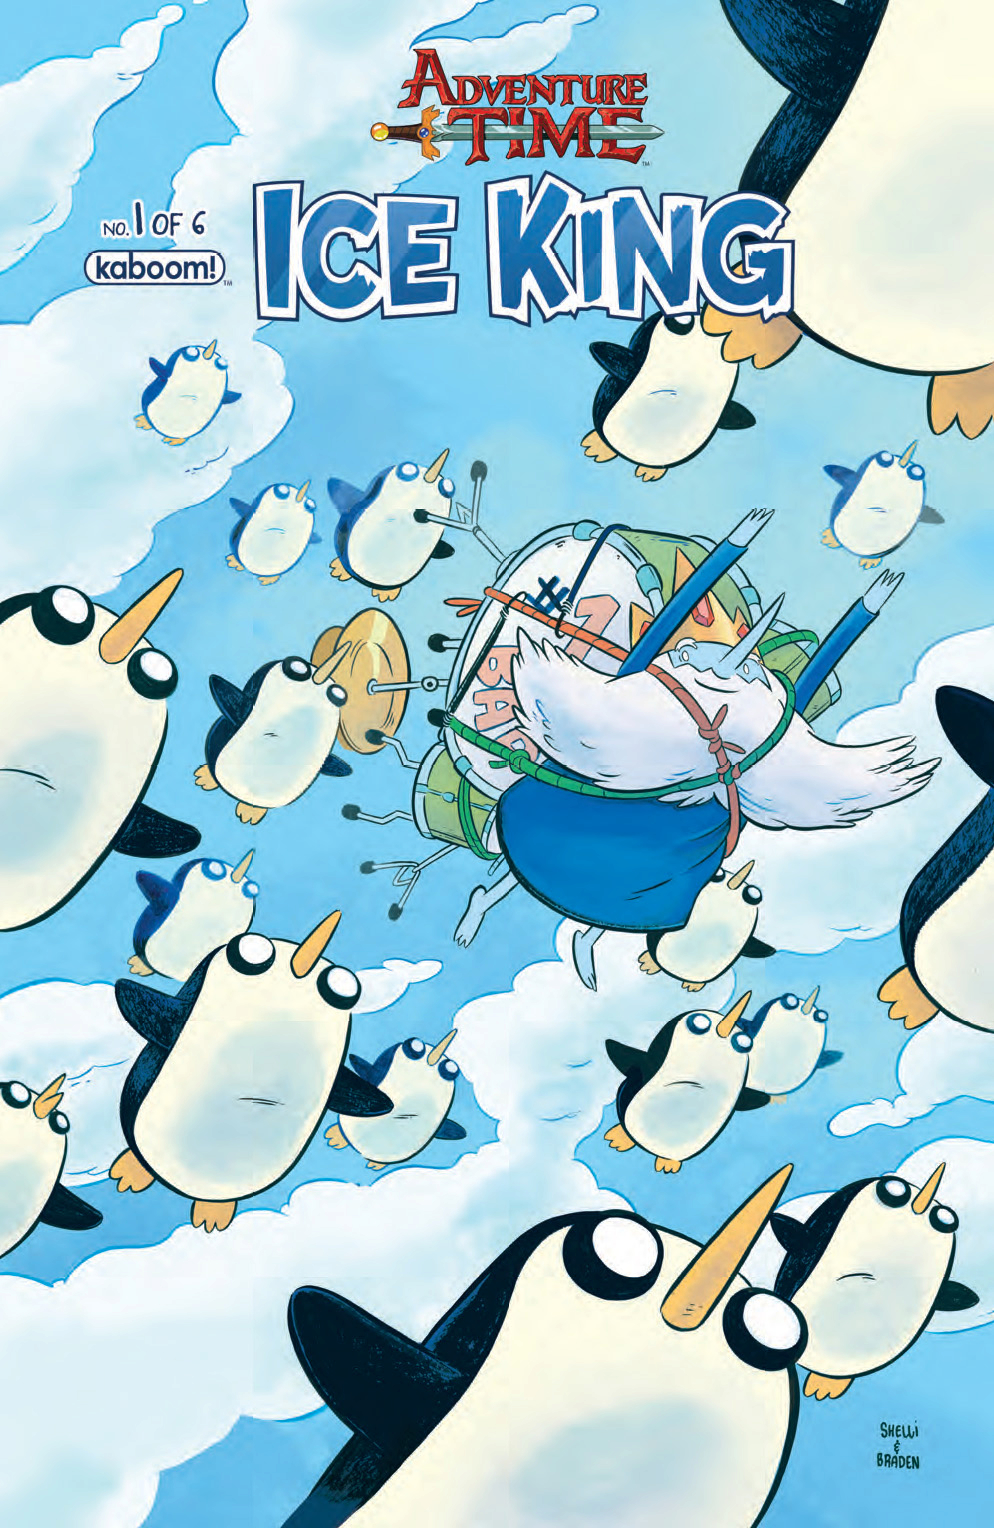 ADVENTURE TIME ICE KING #1